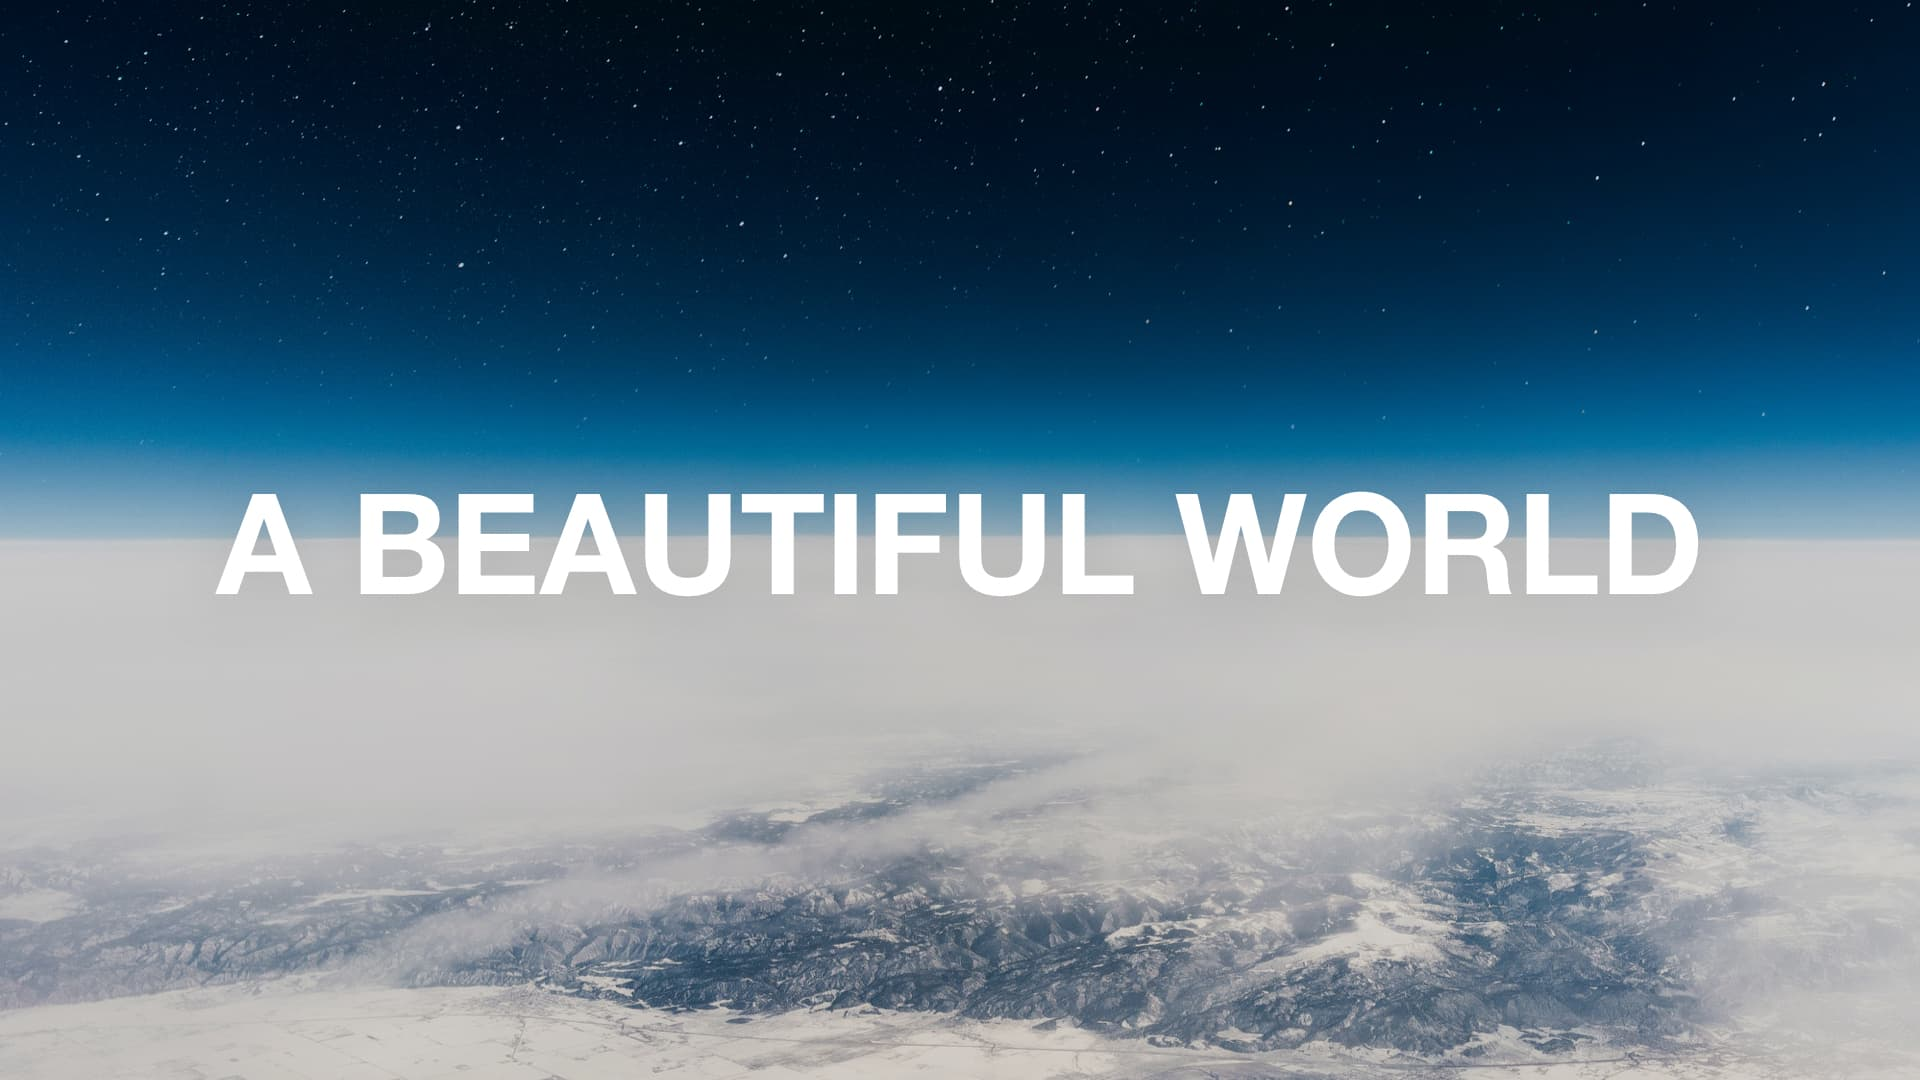 A Beautiful World